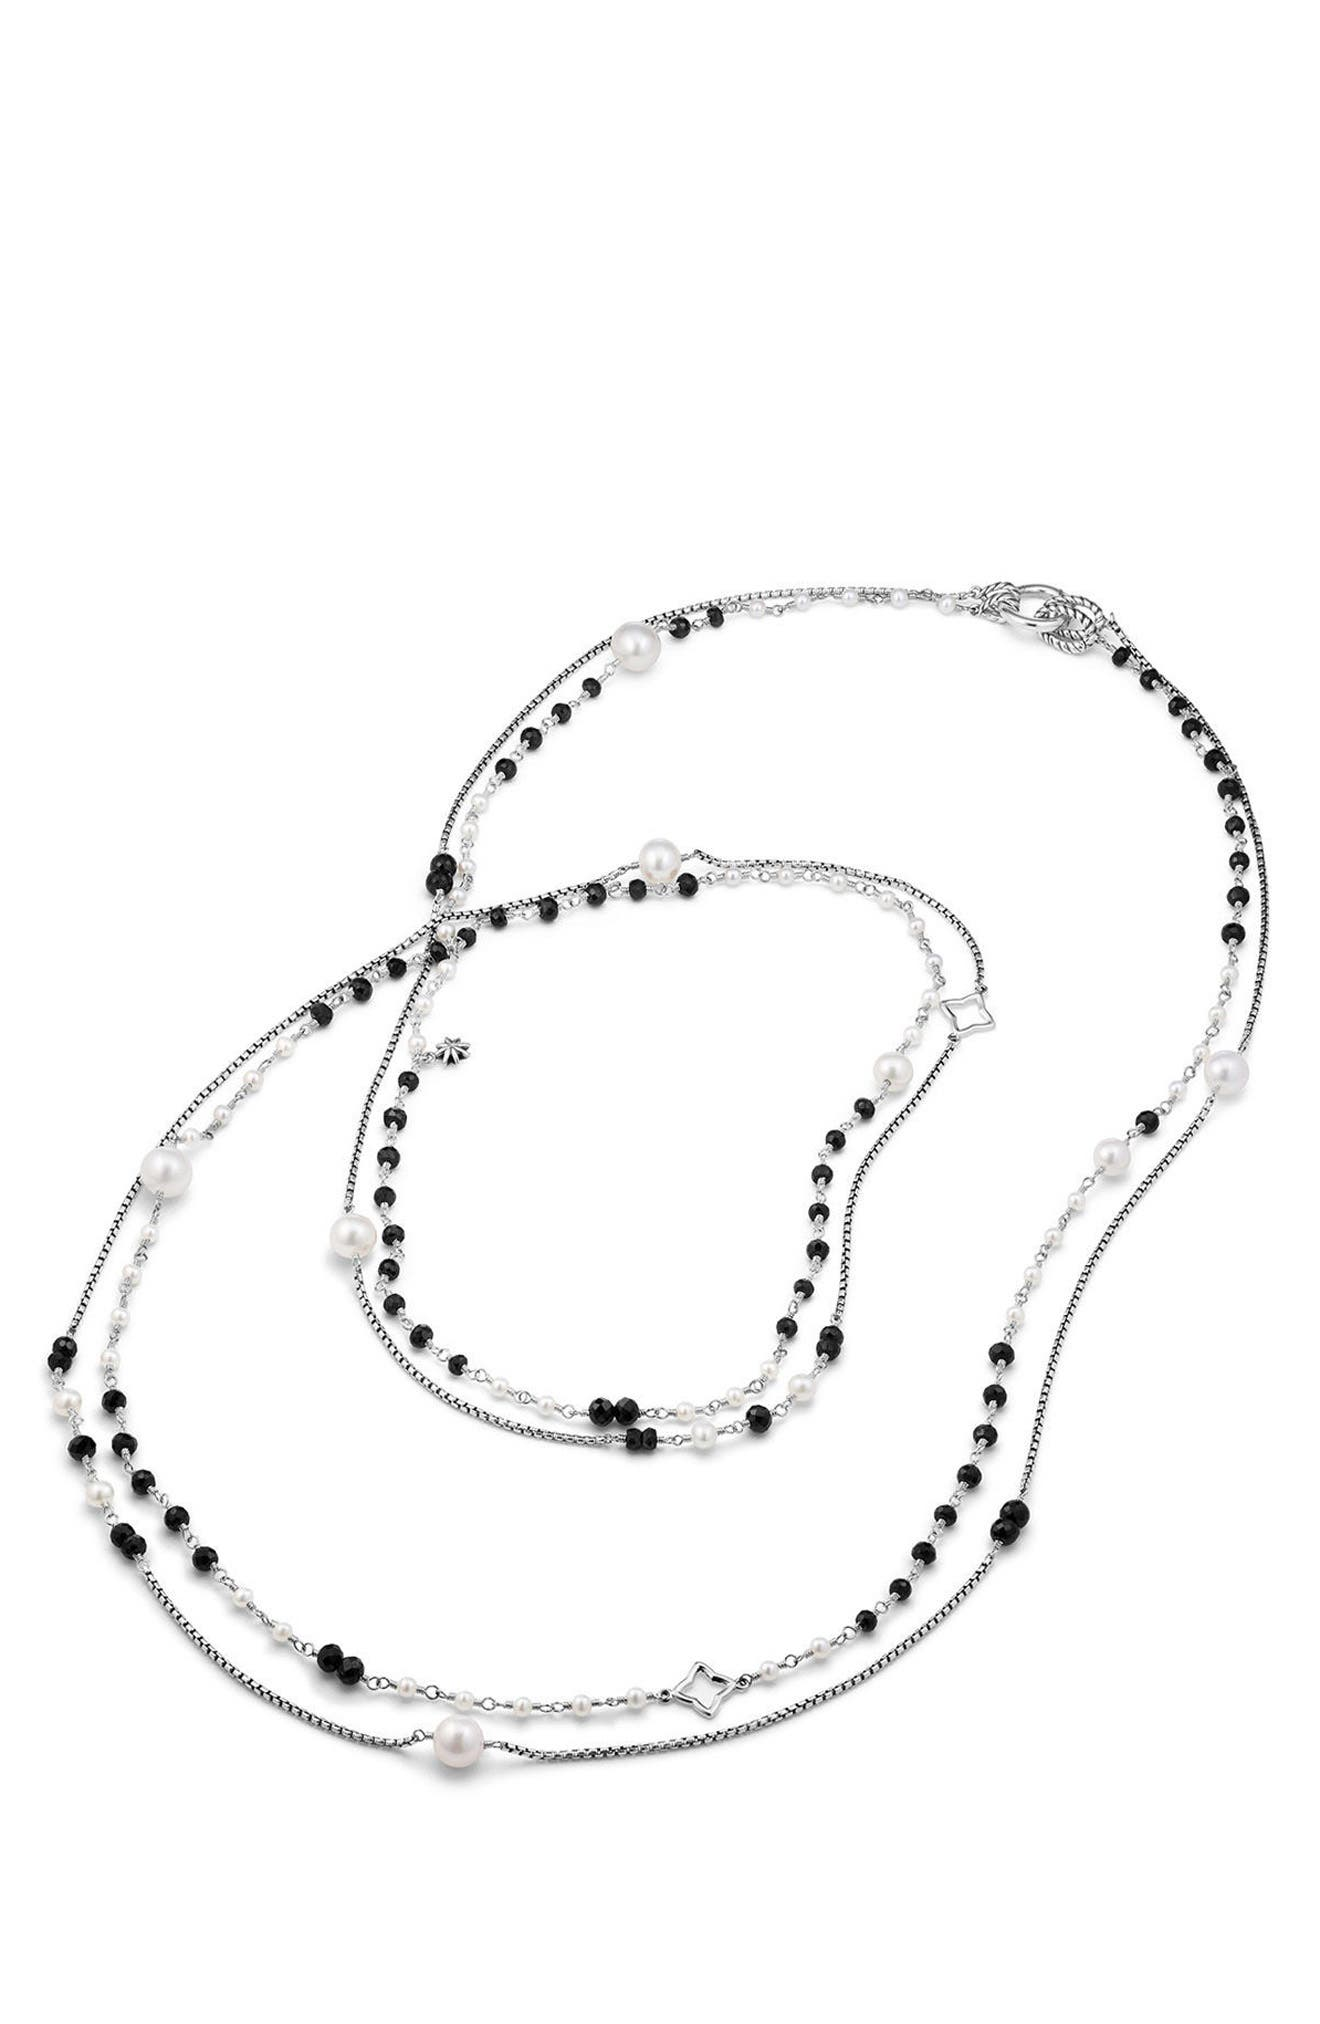 DAVID YURMAN, Solari Two Row Pearl Chain Necklace, Alternate thumbnail 2, color, PEARL/ BLACK SPINEL